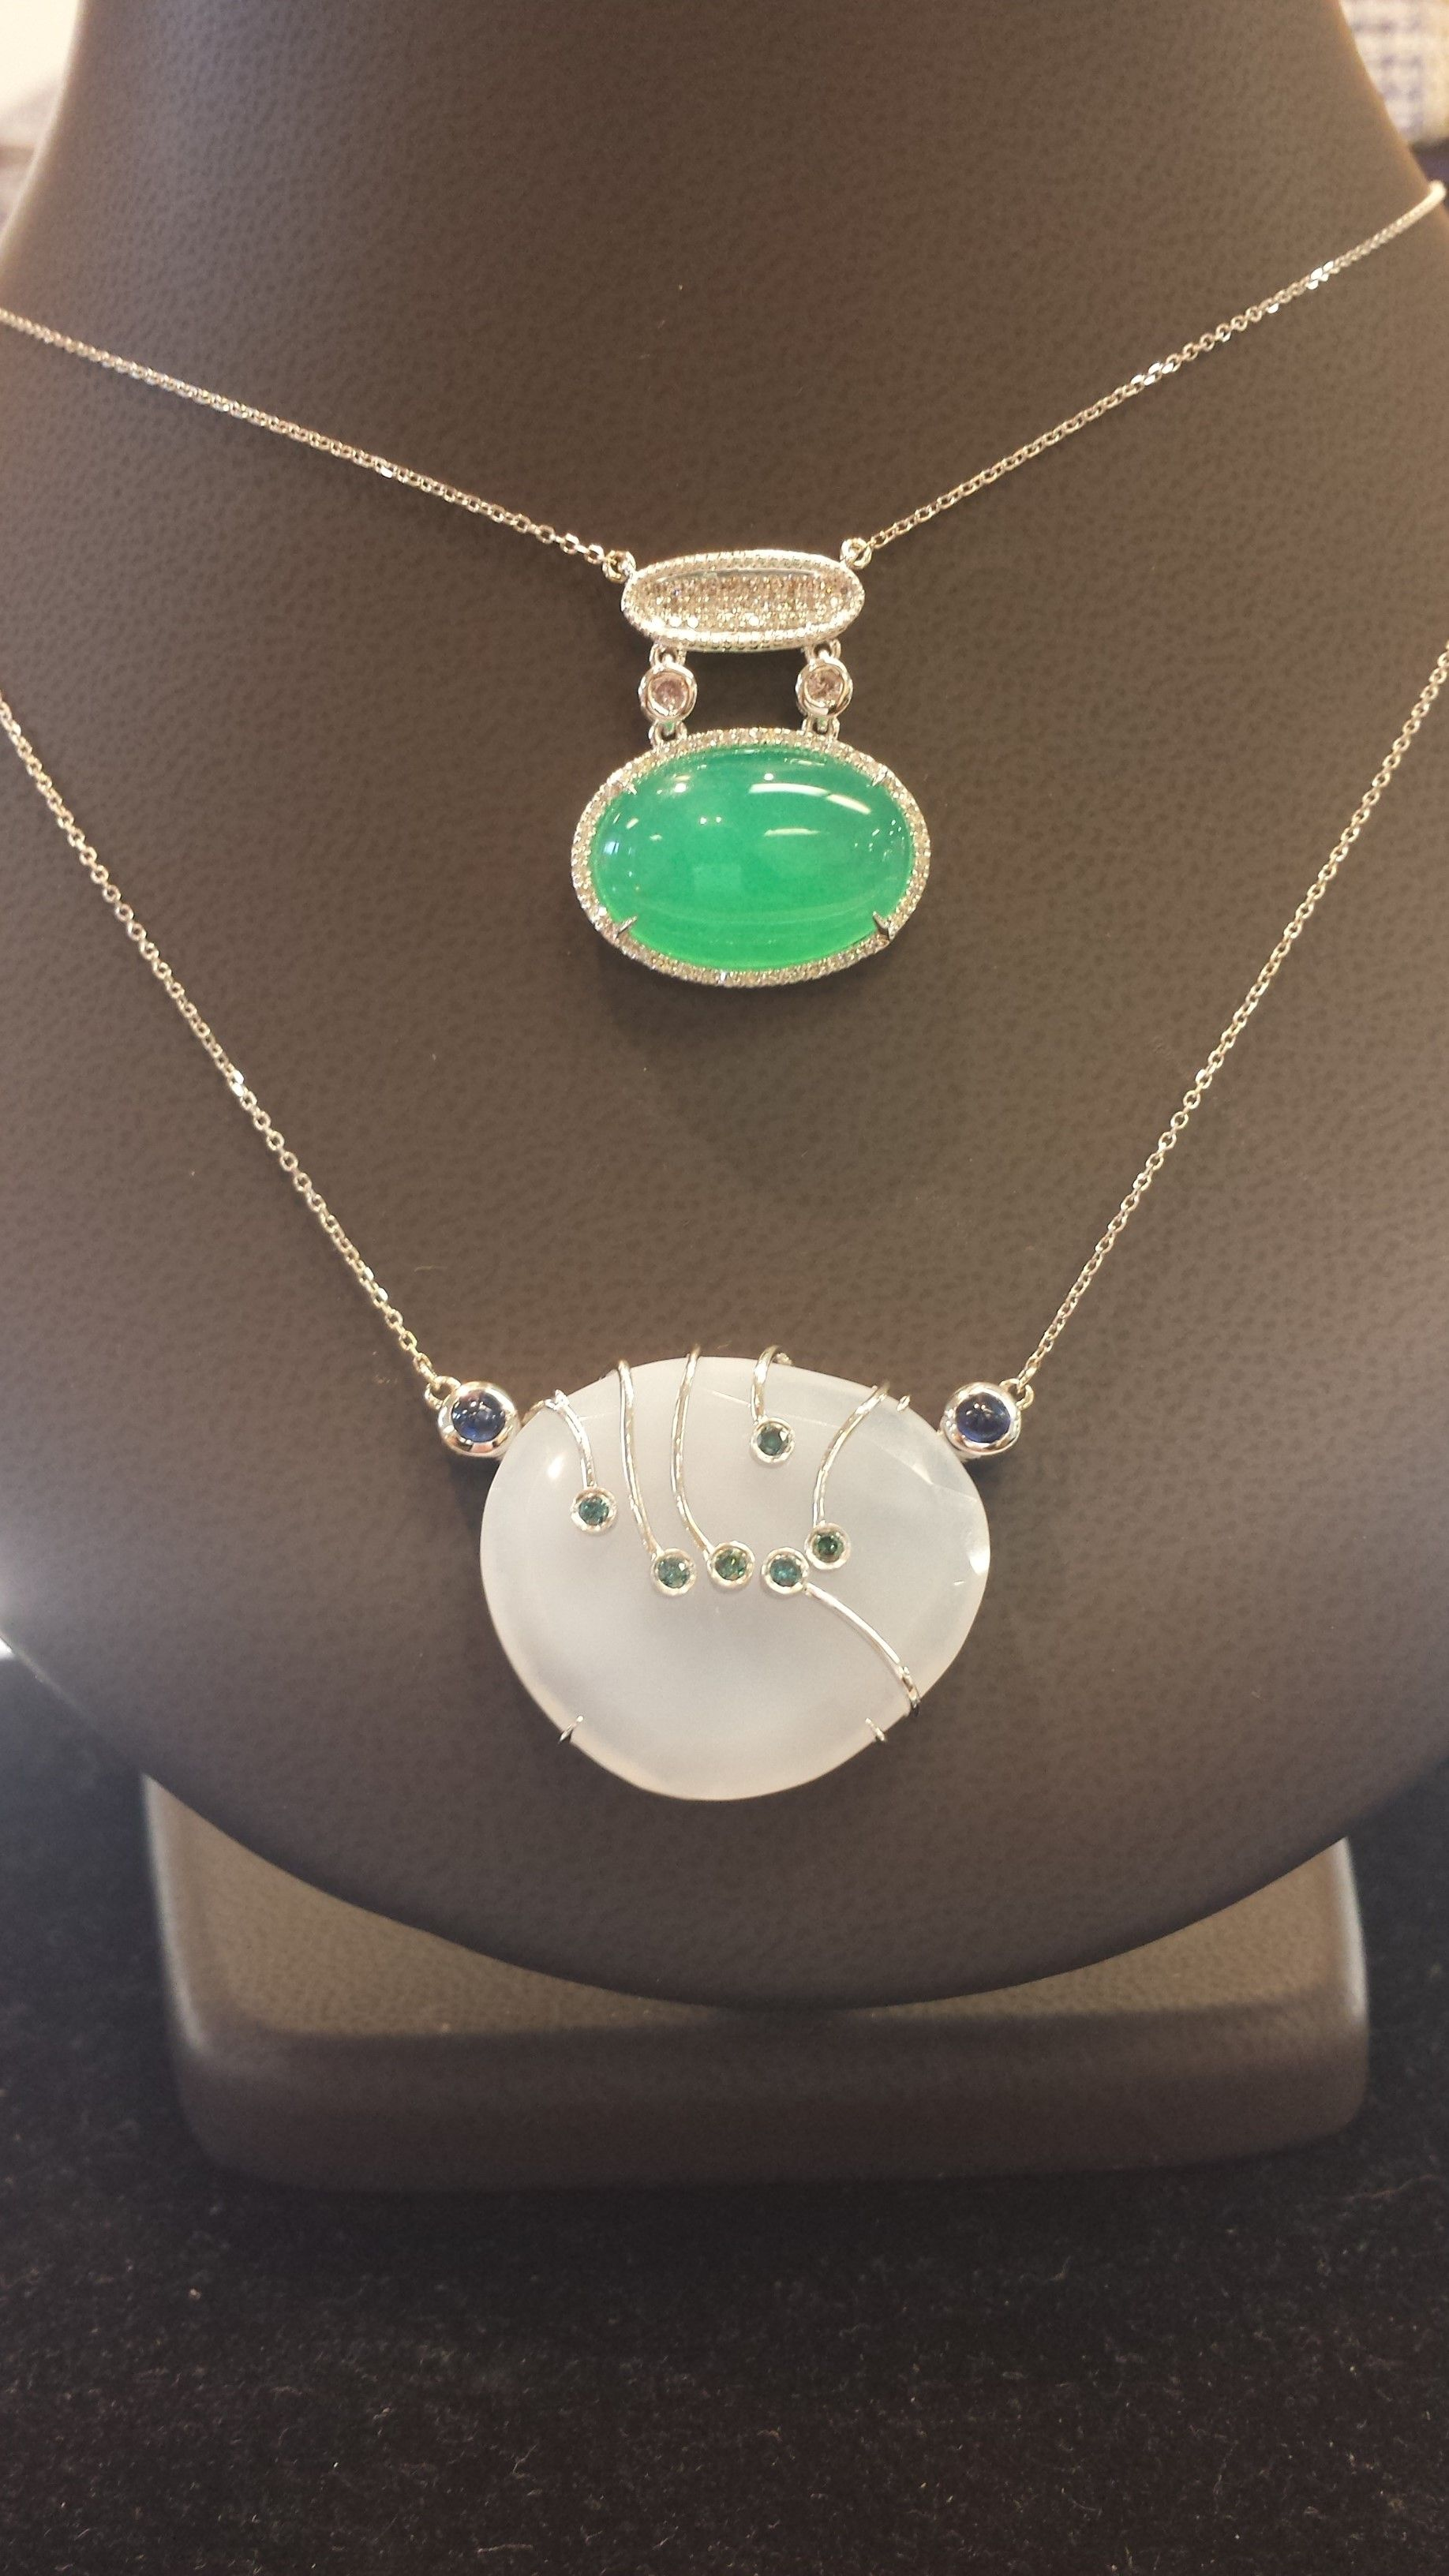 BOTTOM: 14K WHITE GOLD CHALCEDONY, SAPPHIRE AND BLUE DIAMOND NECKLACE TOP: 14K WHITE GOLD GREEN CHRYSOPRASE AND DIAMOND NECKLACE